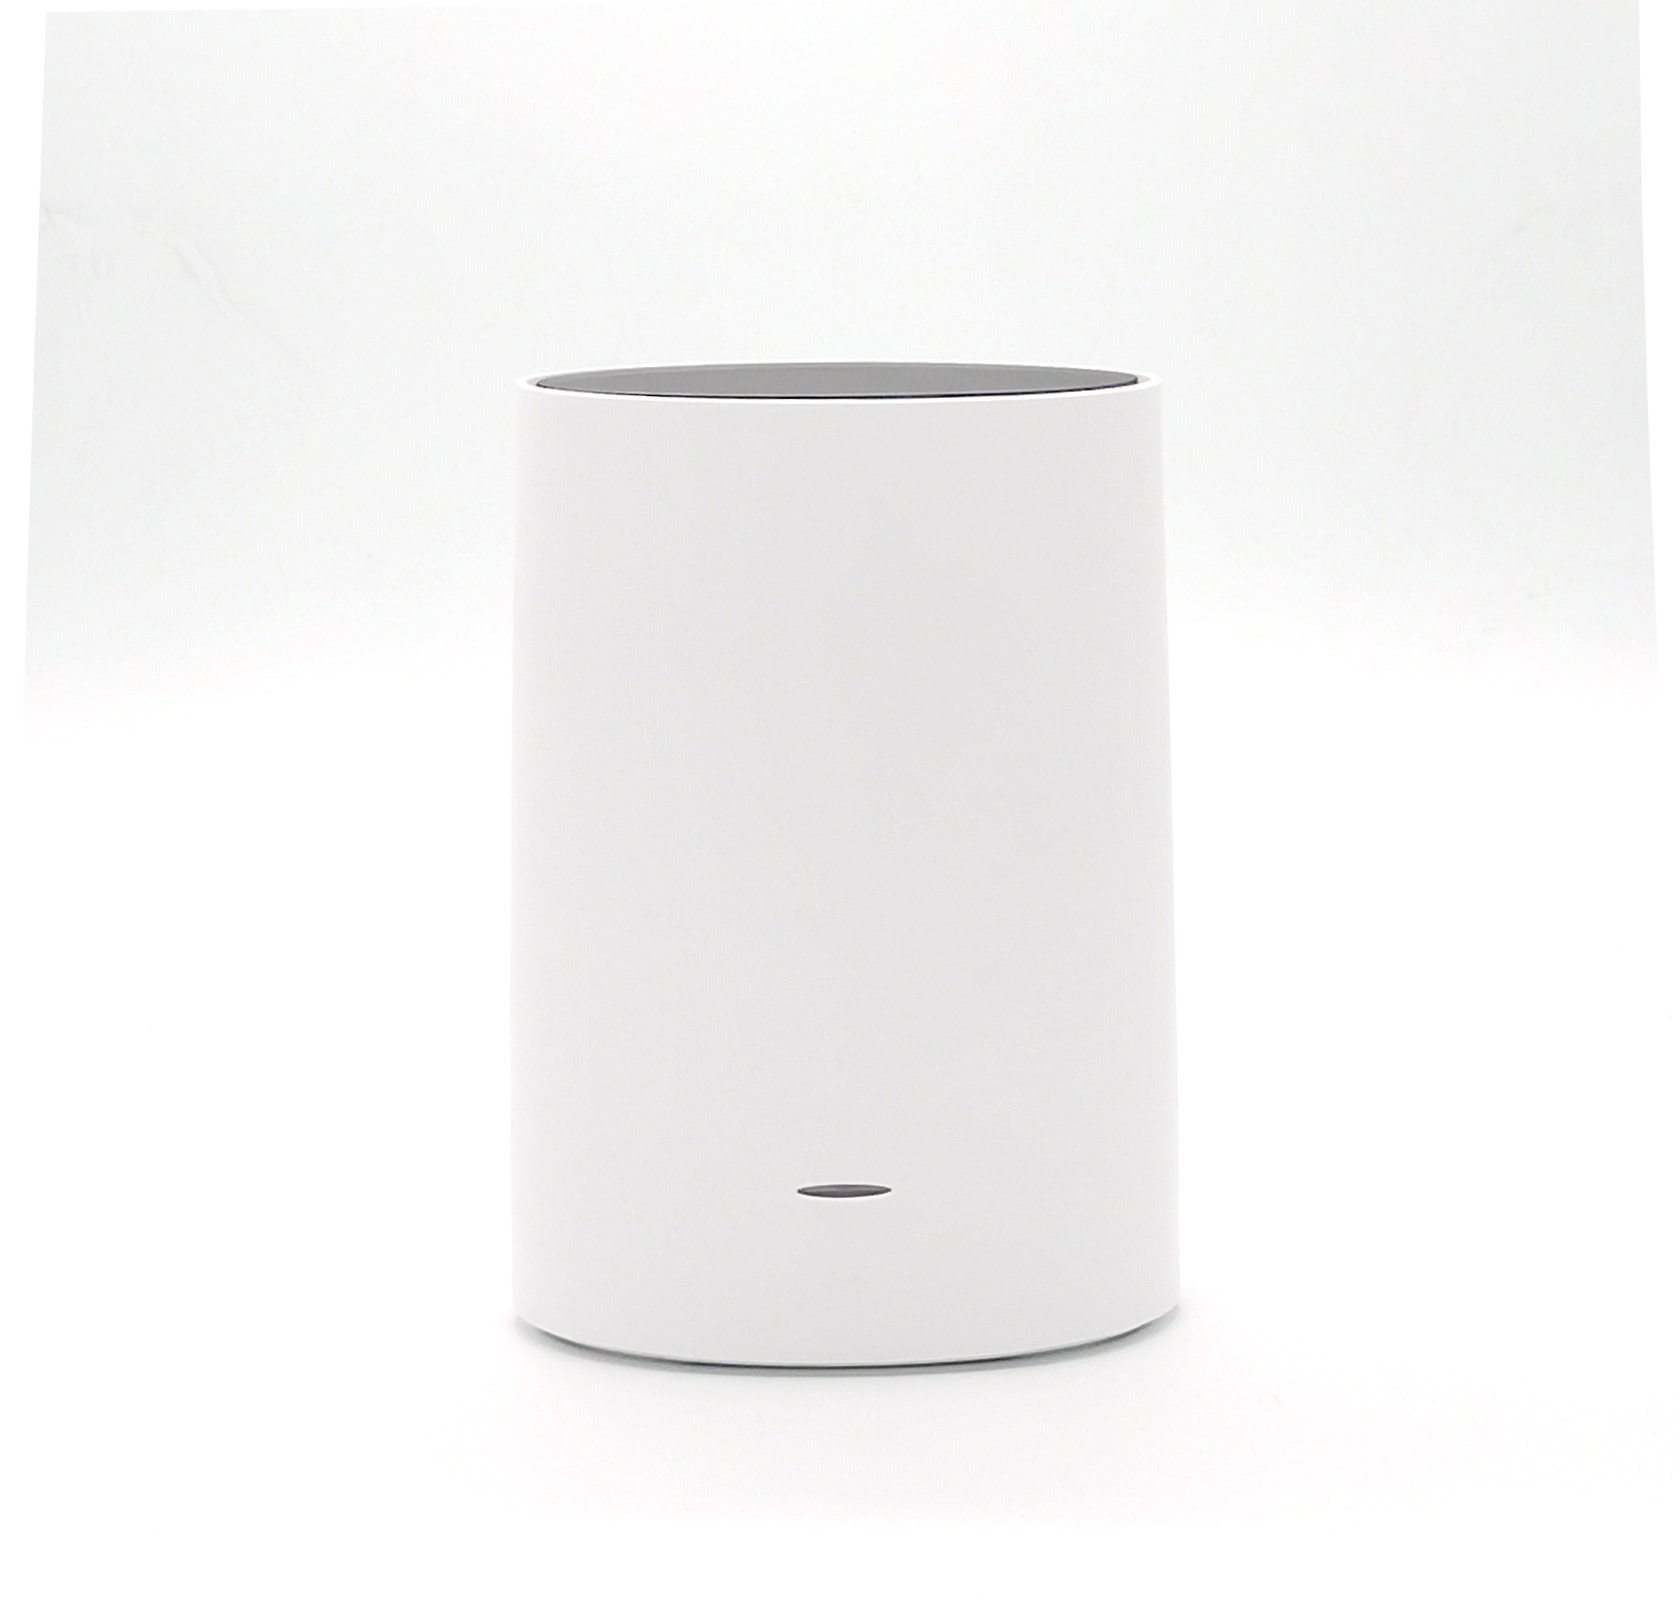 Qualcomm Tri-band Mesh Wifi AC2200Mbps intelligent network